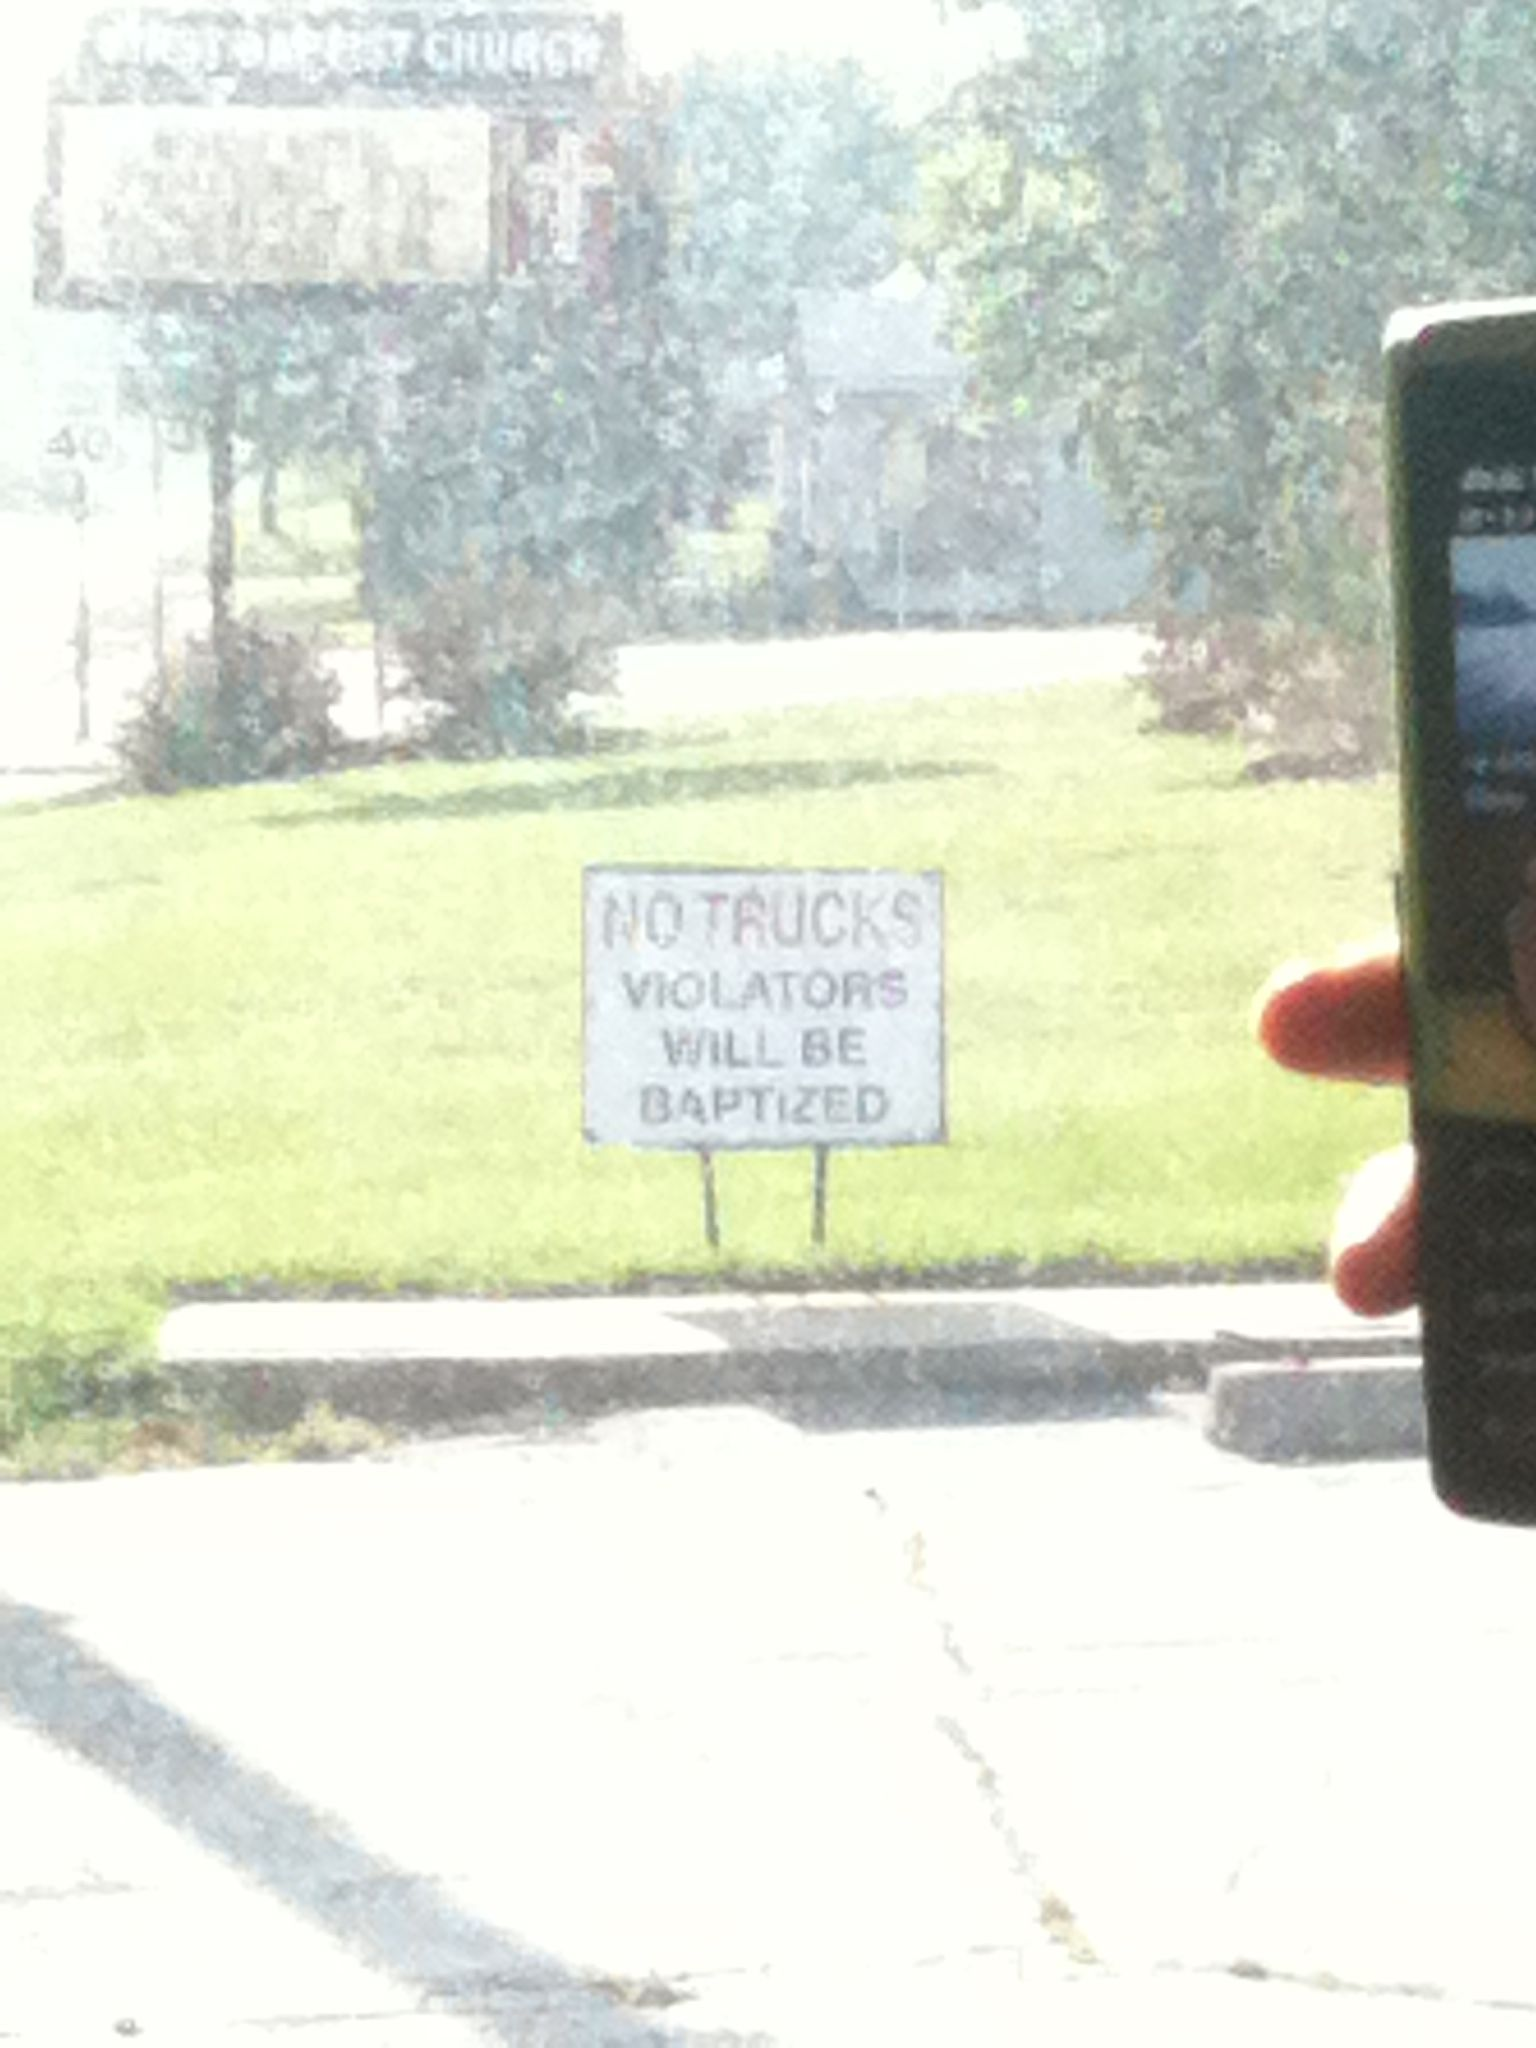 This was in a church's front lawn. I wish I had this sign.